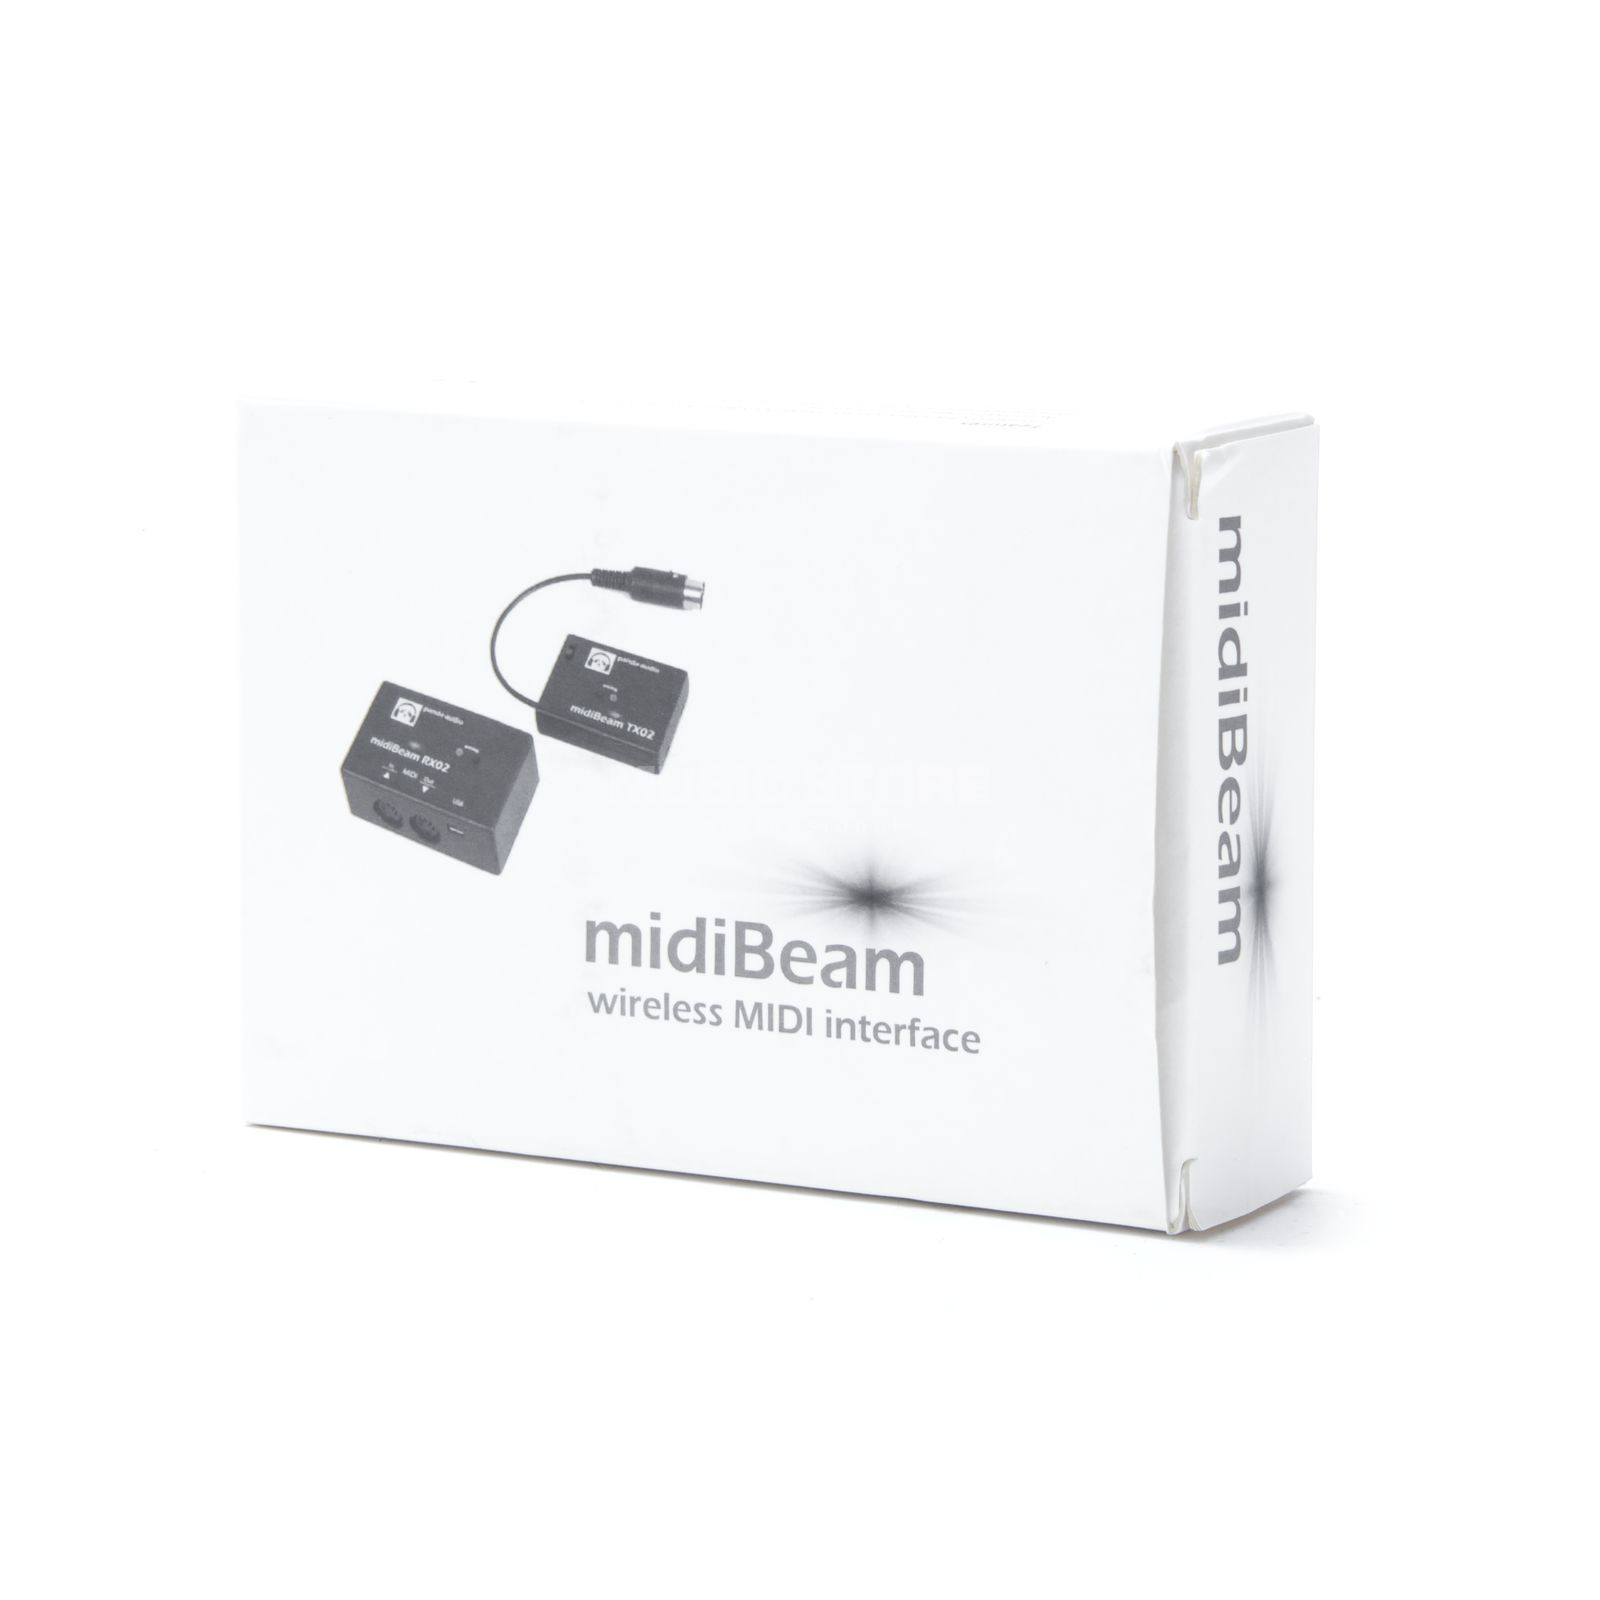 Panda Audio midiBeam Product Image